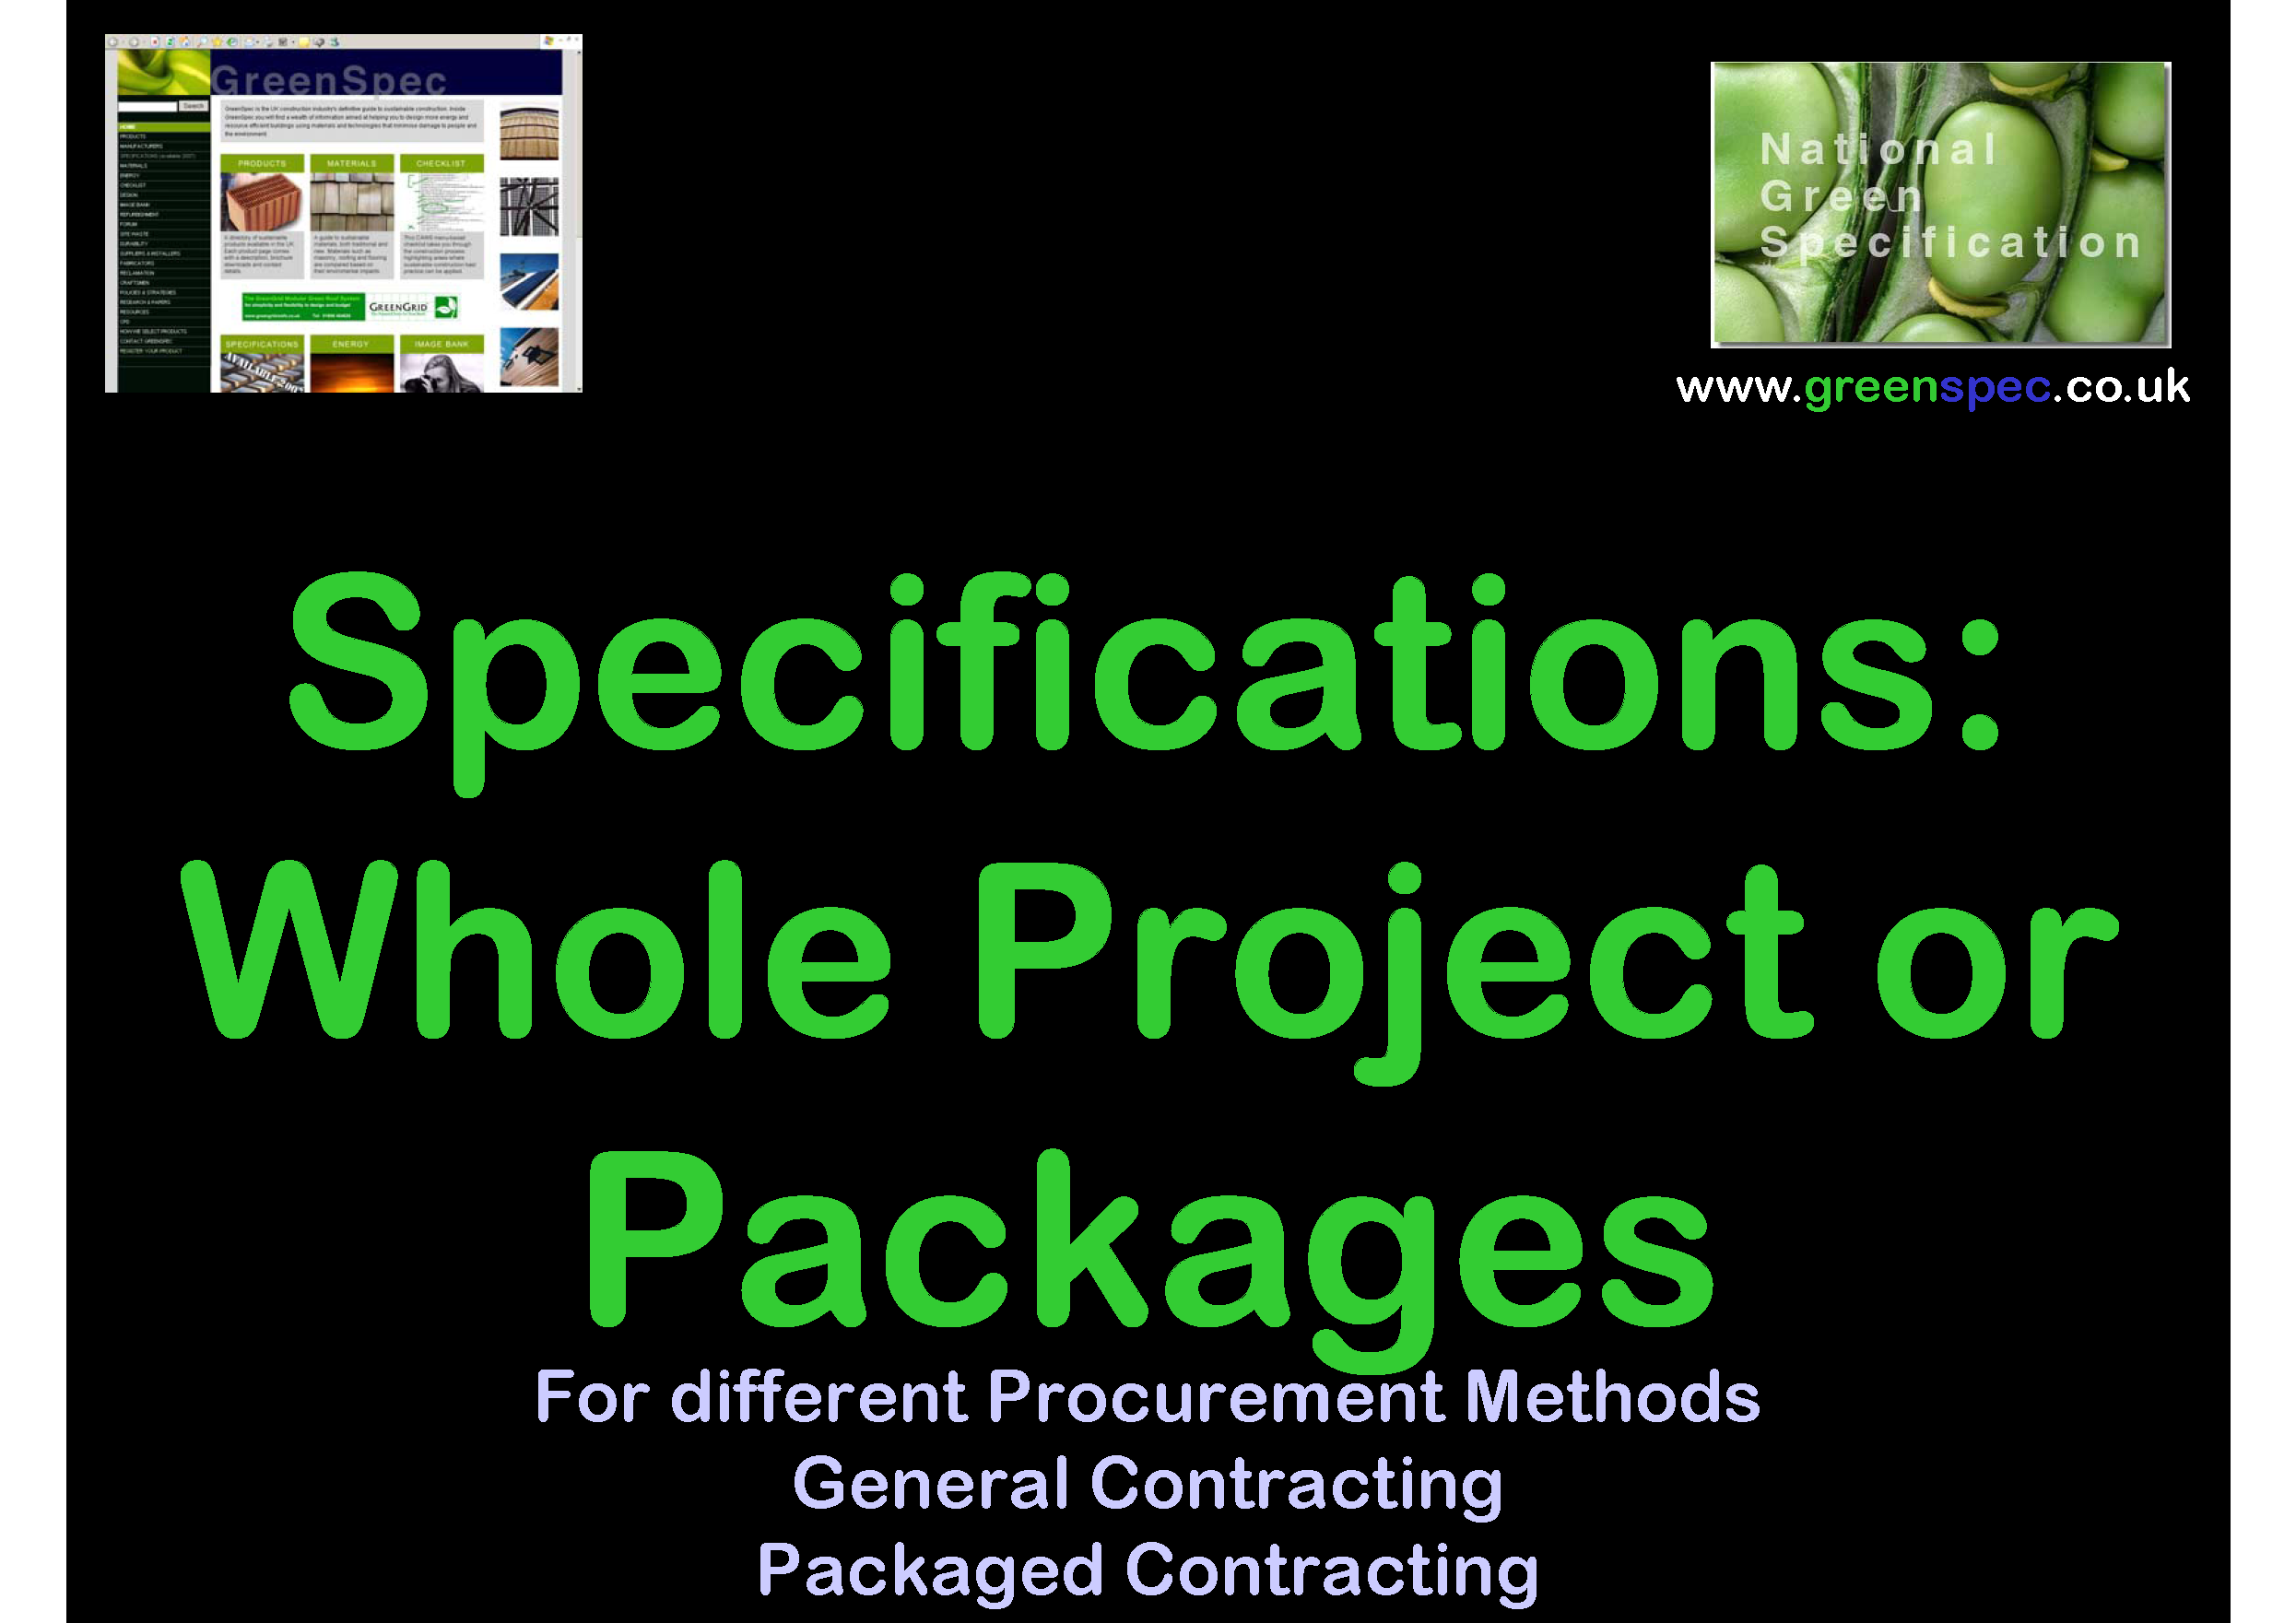 SpecificationWholePackages.png